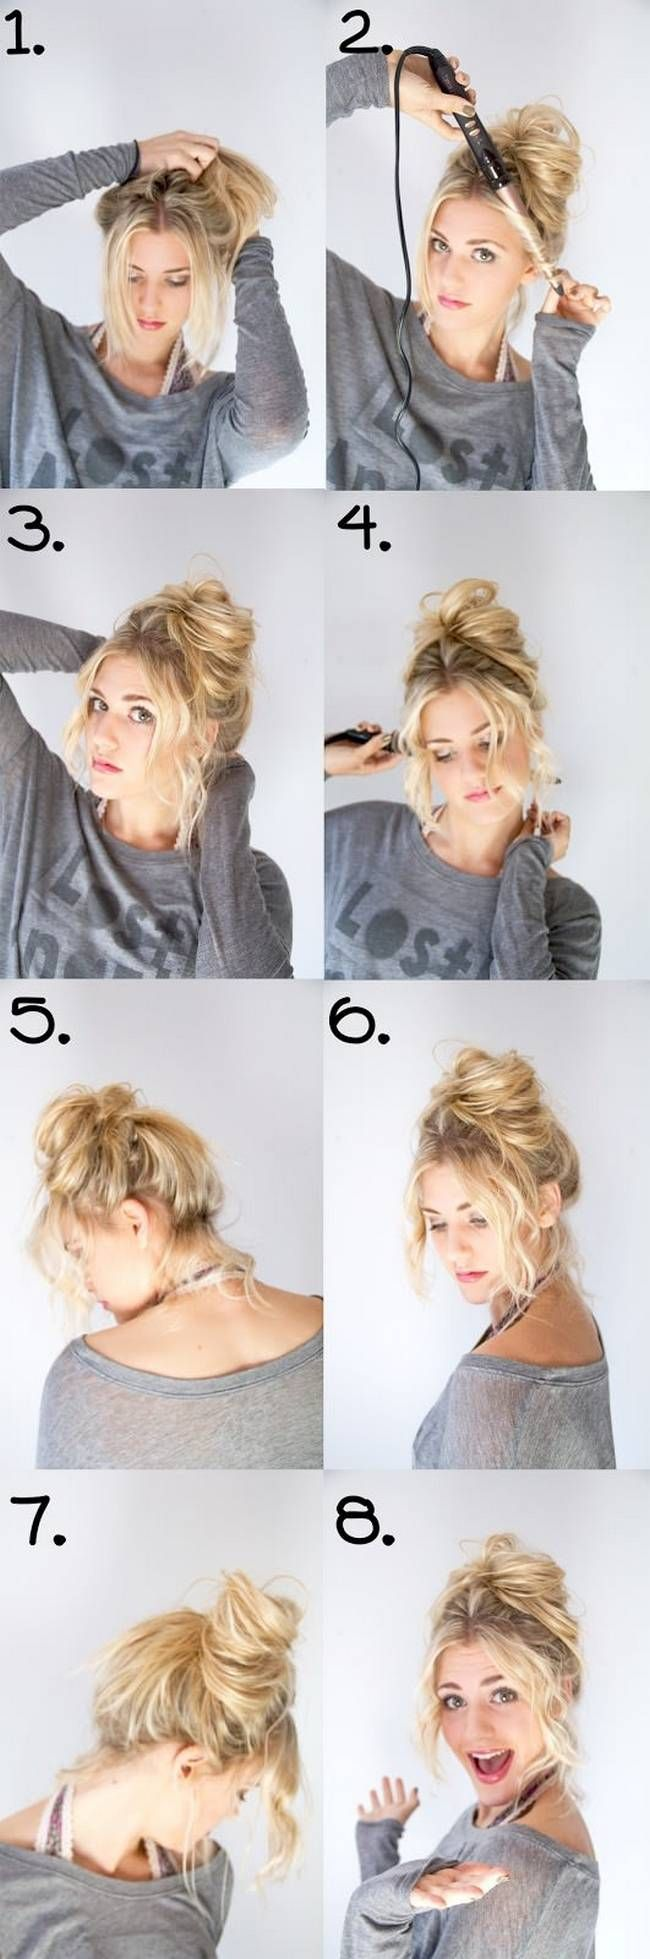 messy bun step by step instructions | 20 Amazing Step by Step Bun Hairstyles | Planet of Women- Health ...